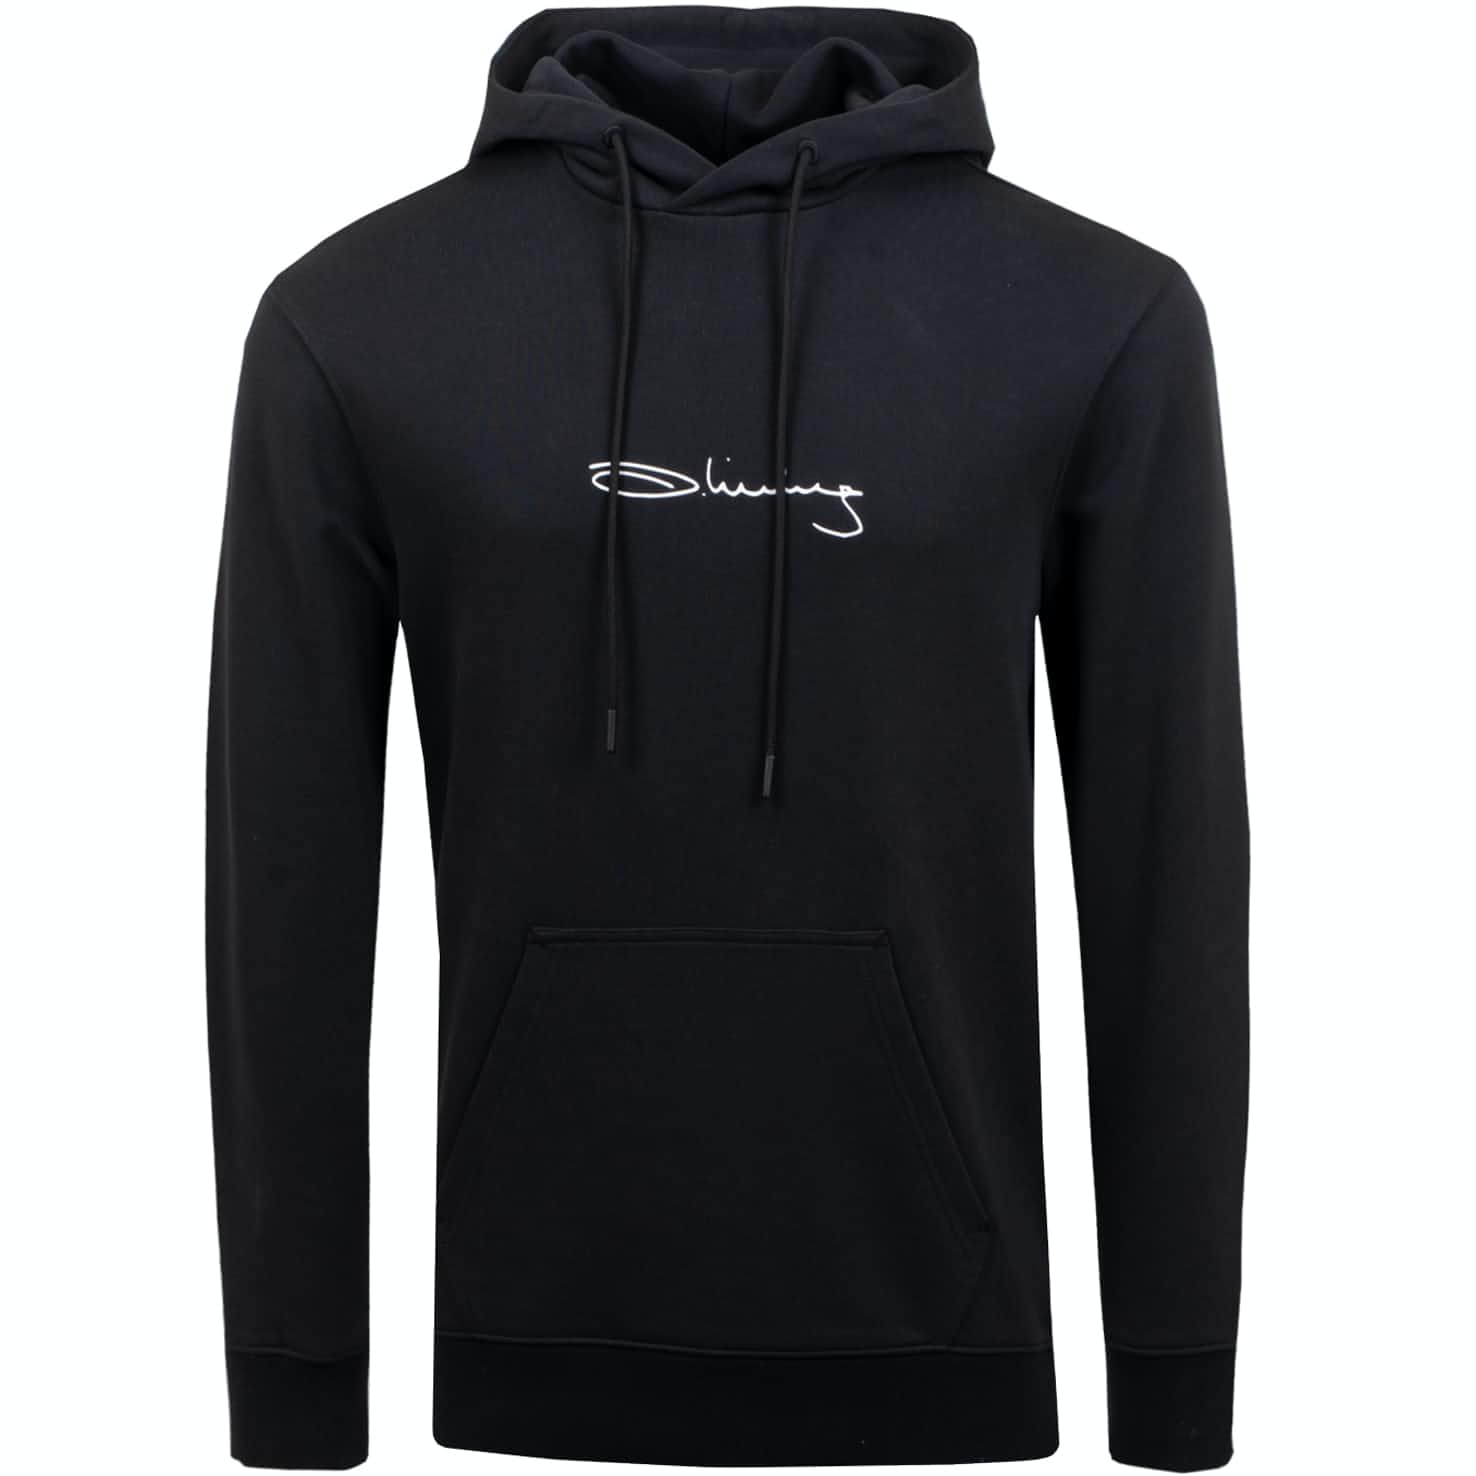 Iconic Hoodie French Terry Black - SS19